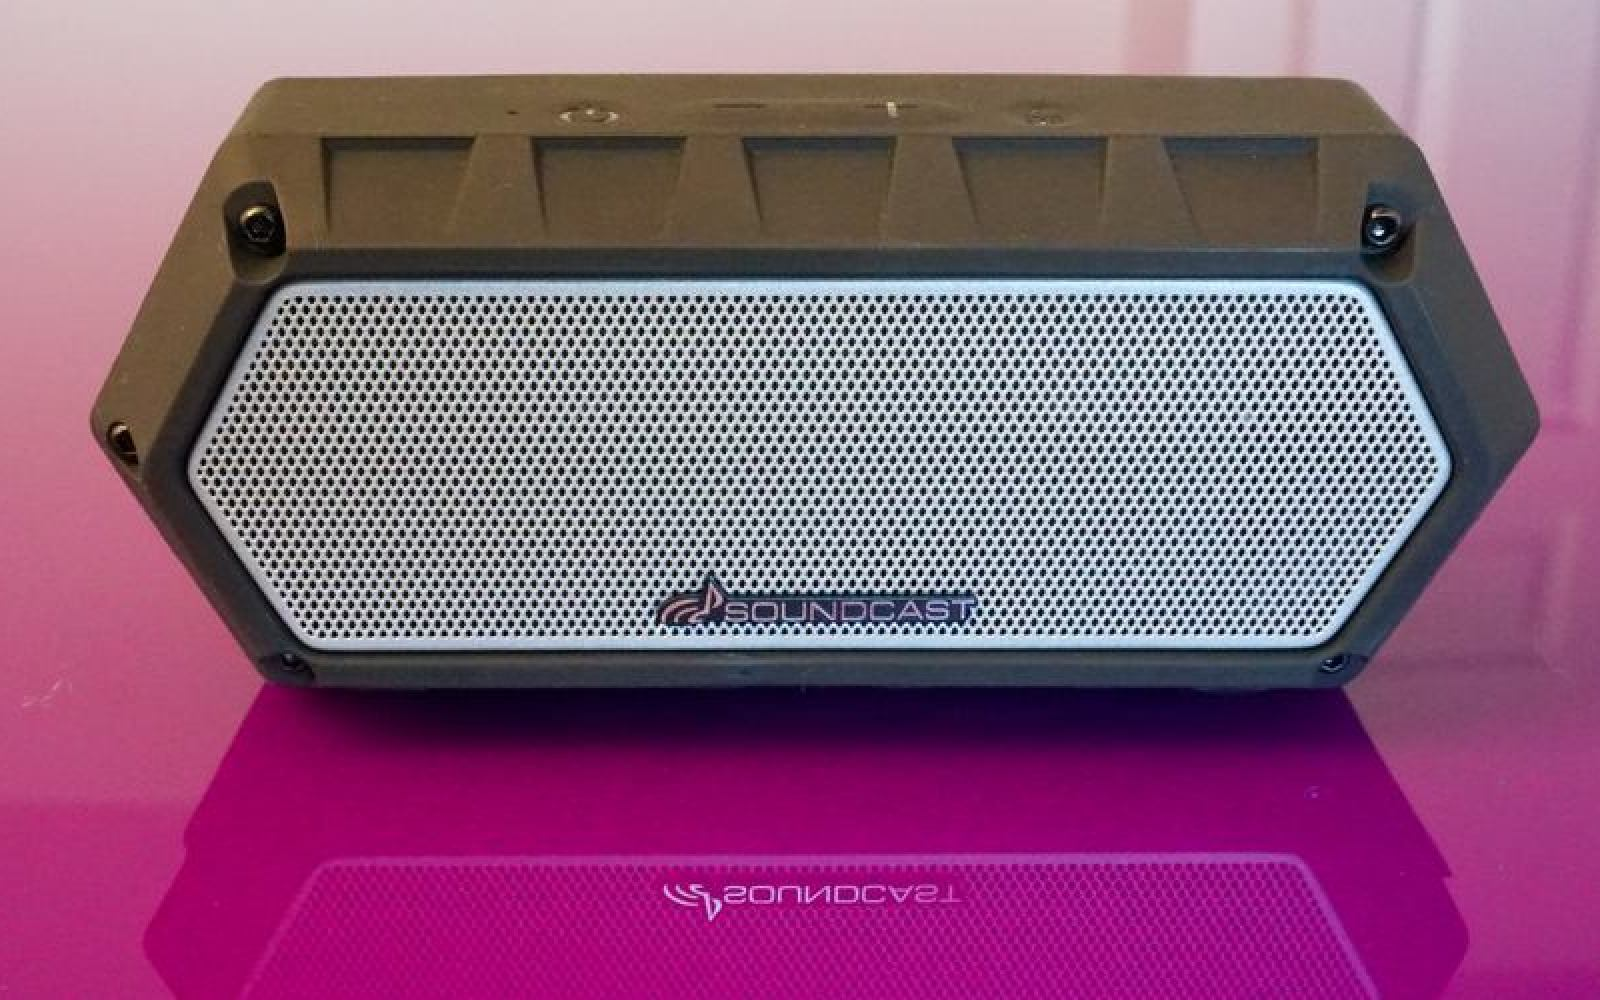 Review: The Soundcast VG1 packs a lot of punch into a compact, waterproof speaker